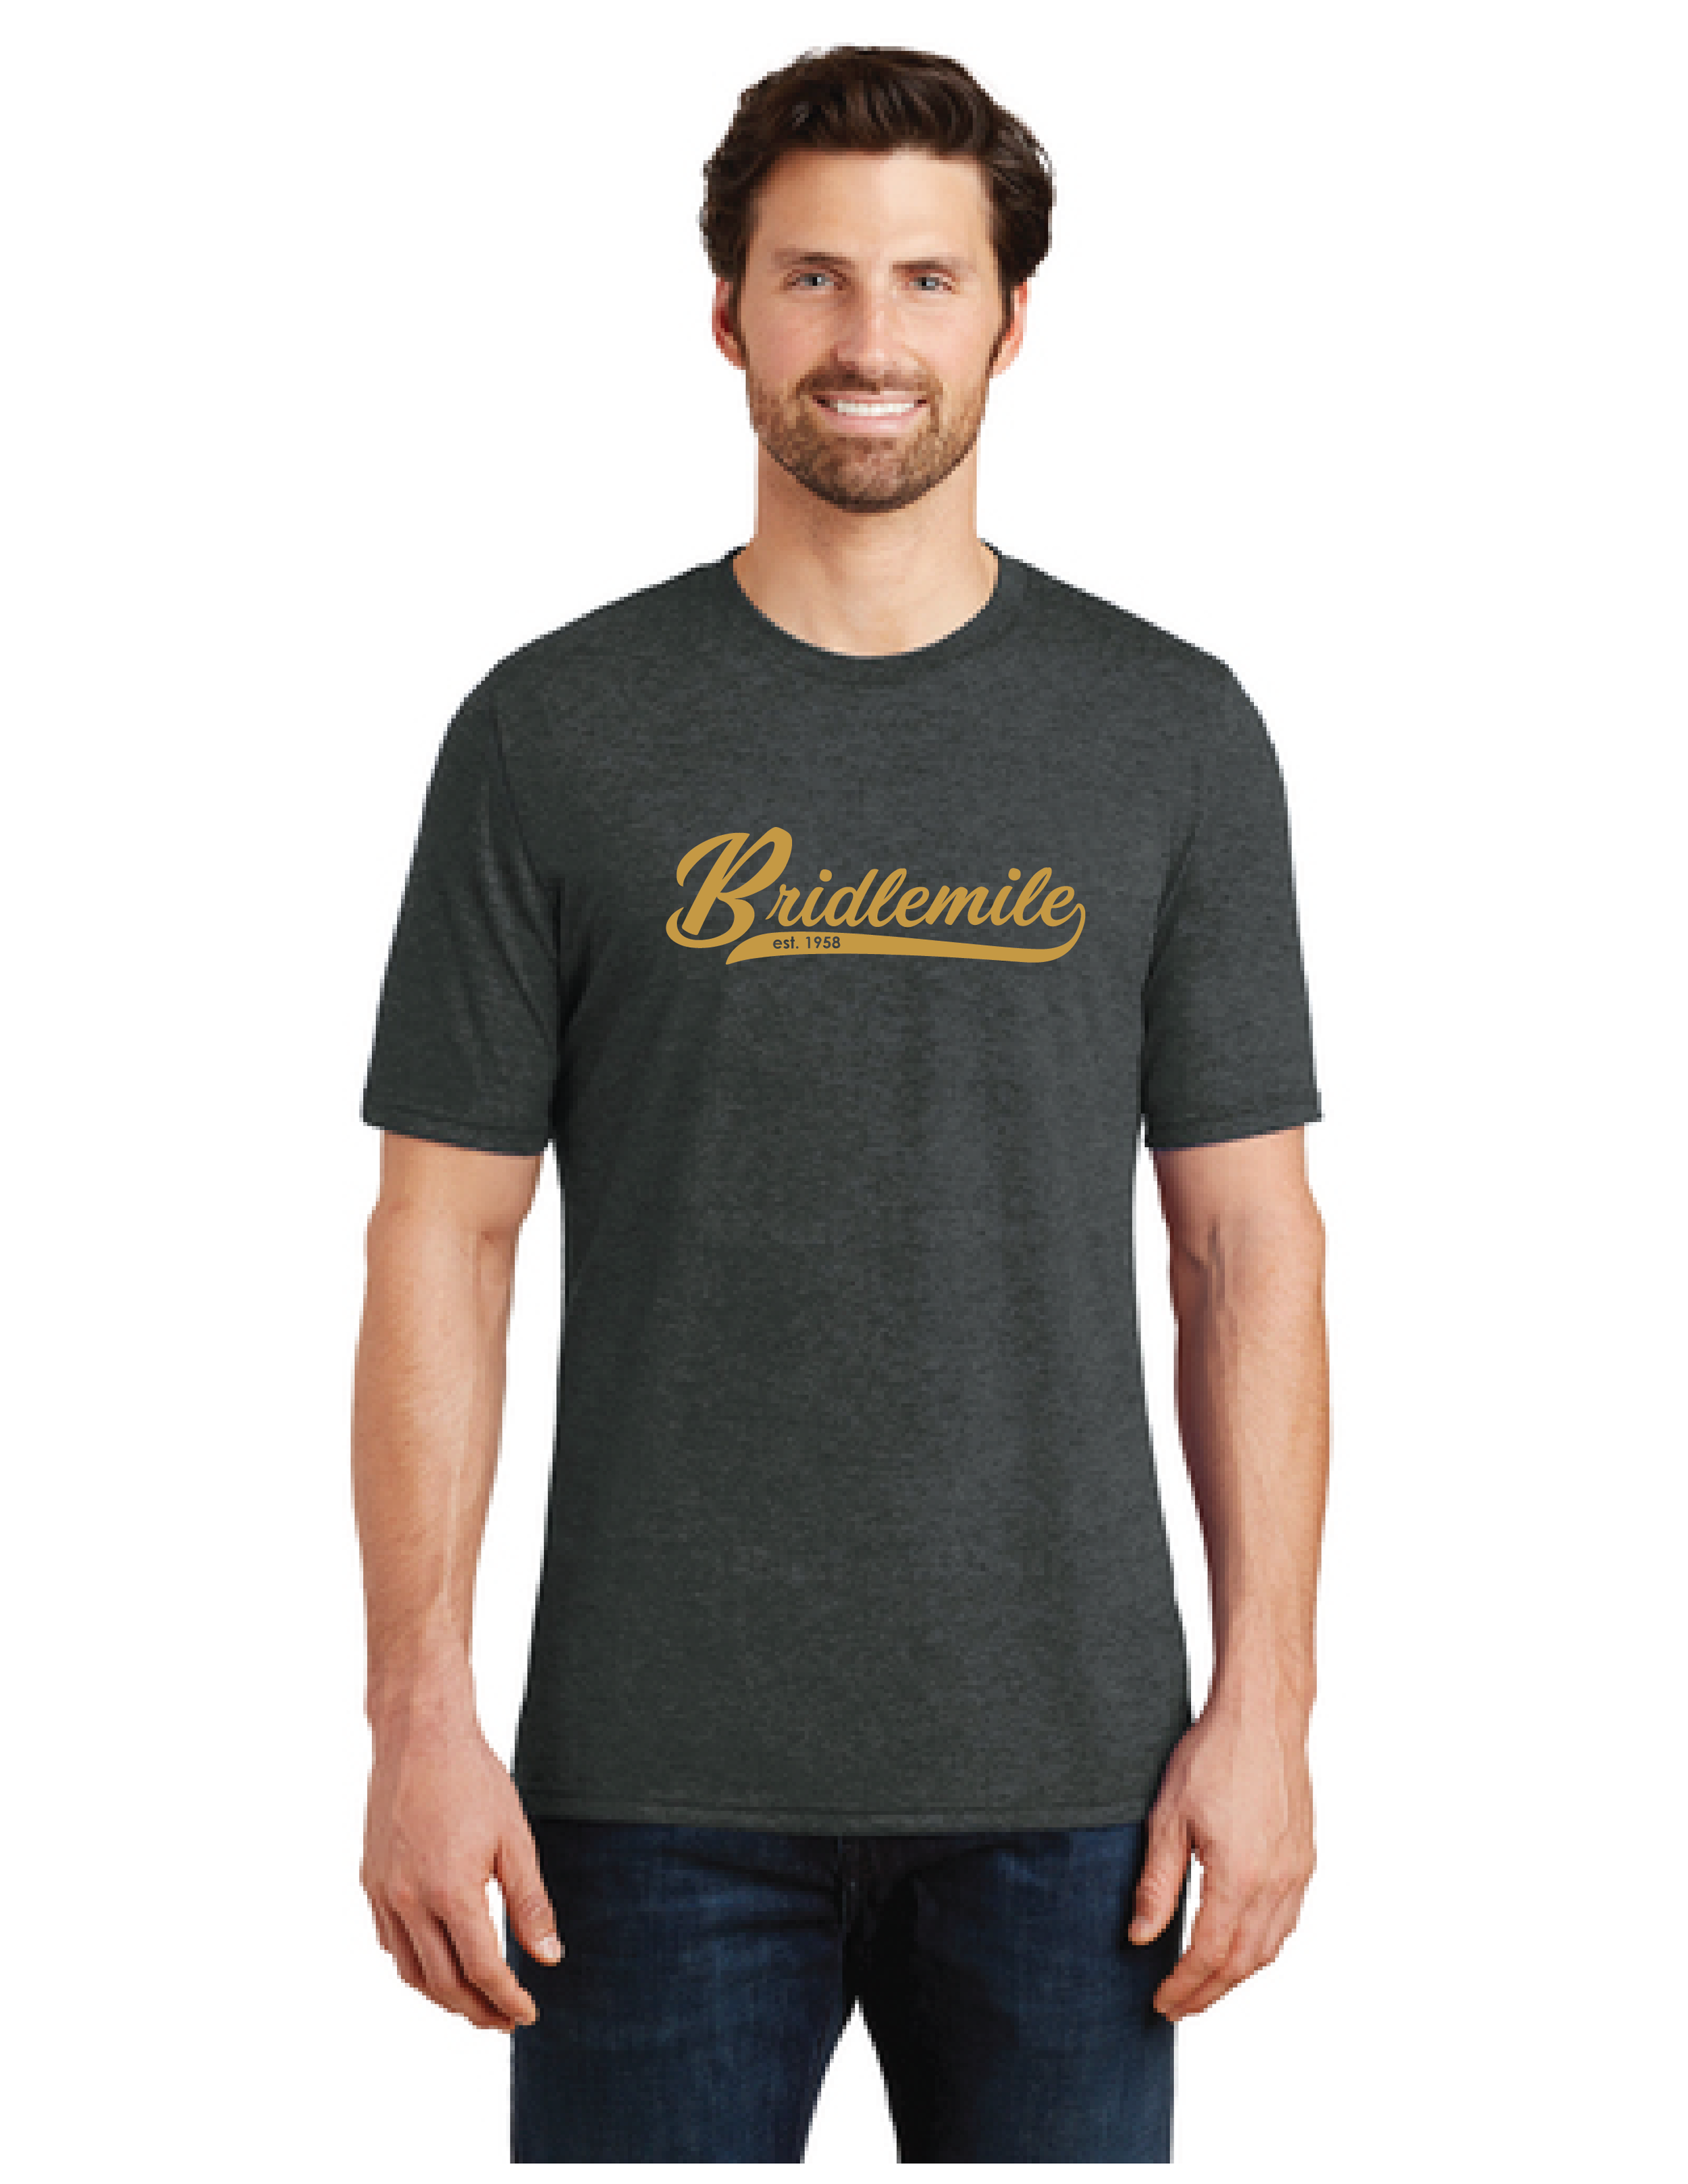 Bridlemile 60th Anniversary Designs_60th Tee Mens.png